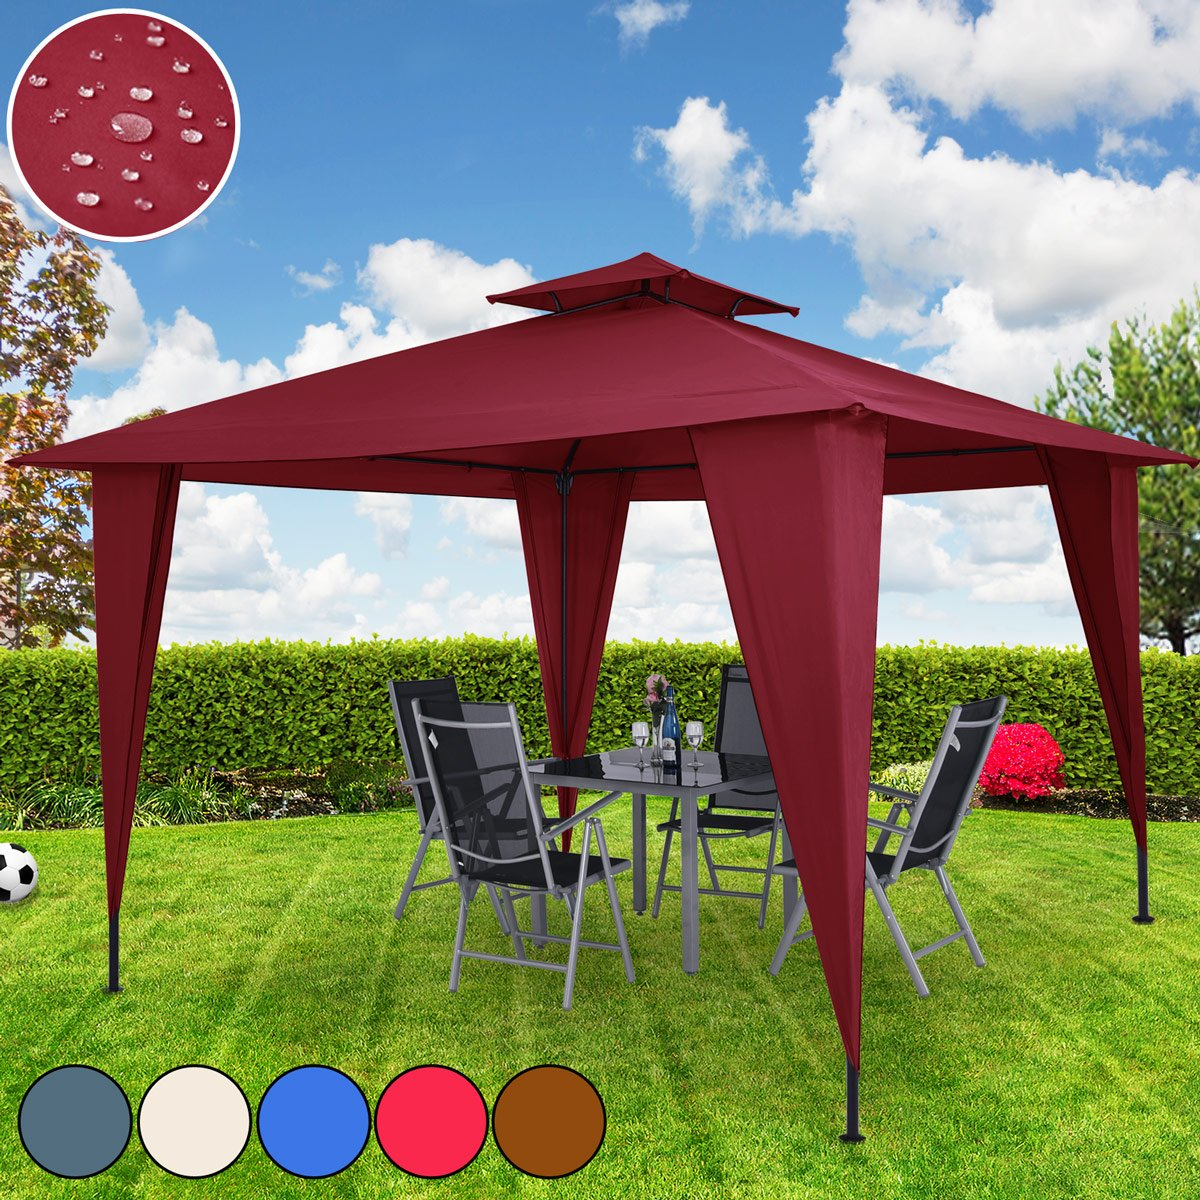 Deuba Garden Gazebo Sairee | Incl. Ground Anchors, Metal Frame, Powder Coated, Waterproof, UV-Restistance 50+ | 12x12 ft | Brown